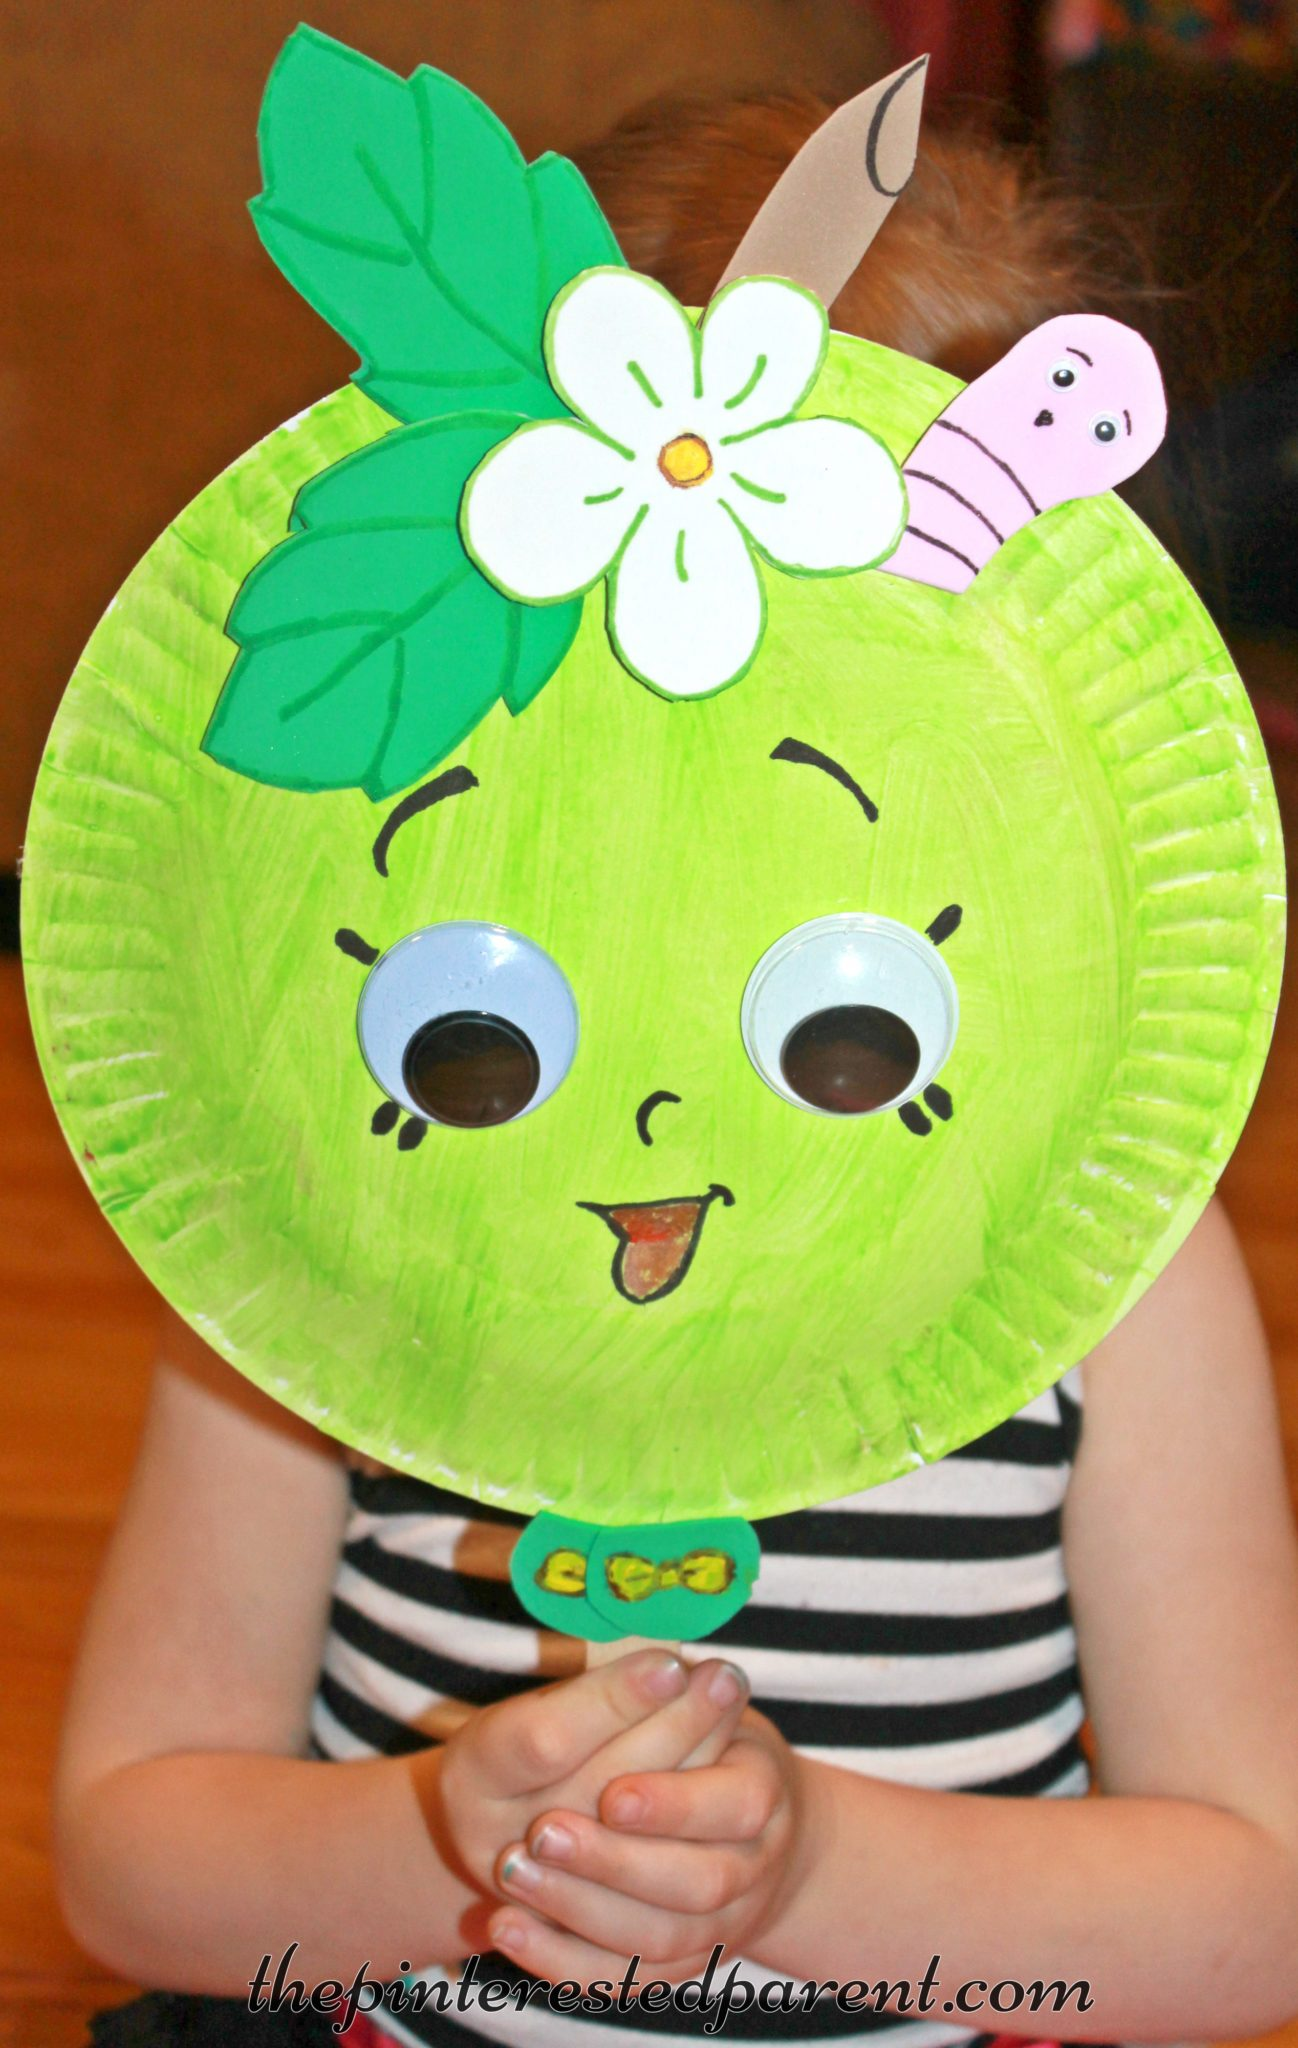 Paper plate mask inspired by Shopkins Green Apple Blossom - kidu0027s character crafts and activities for & Shopkins Inspired Paper Plate Mask u2013 The Pinterested Parent